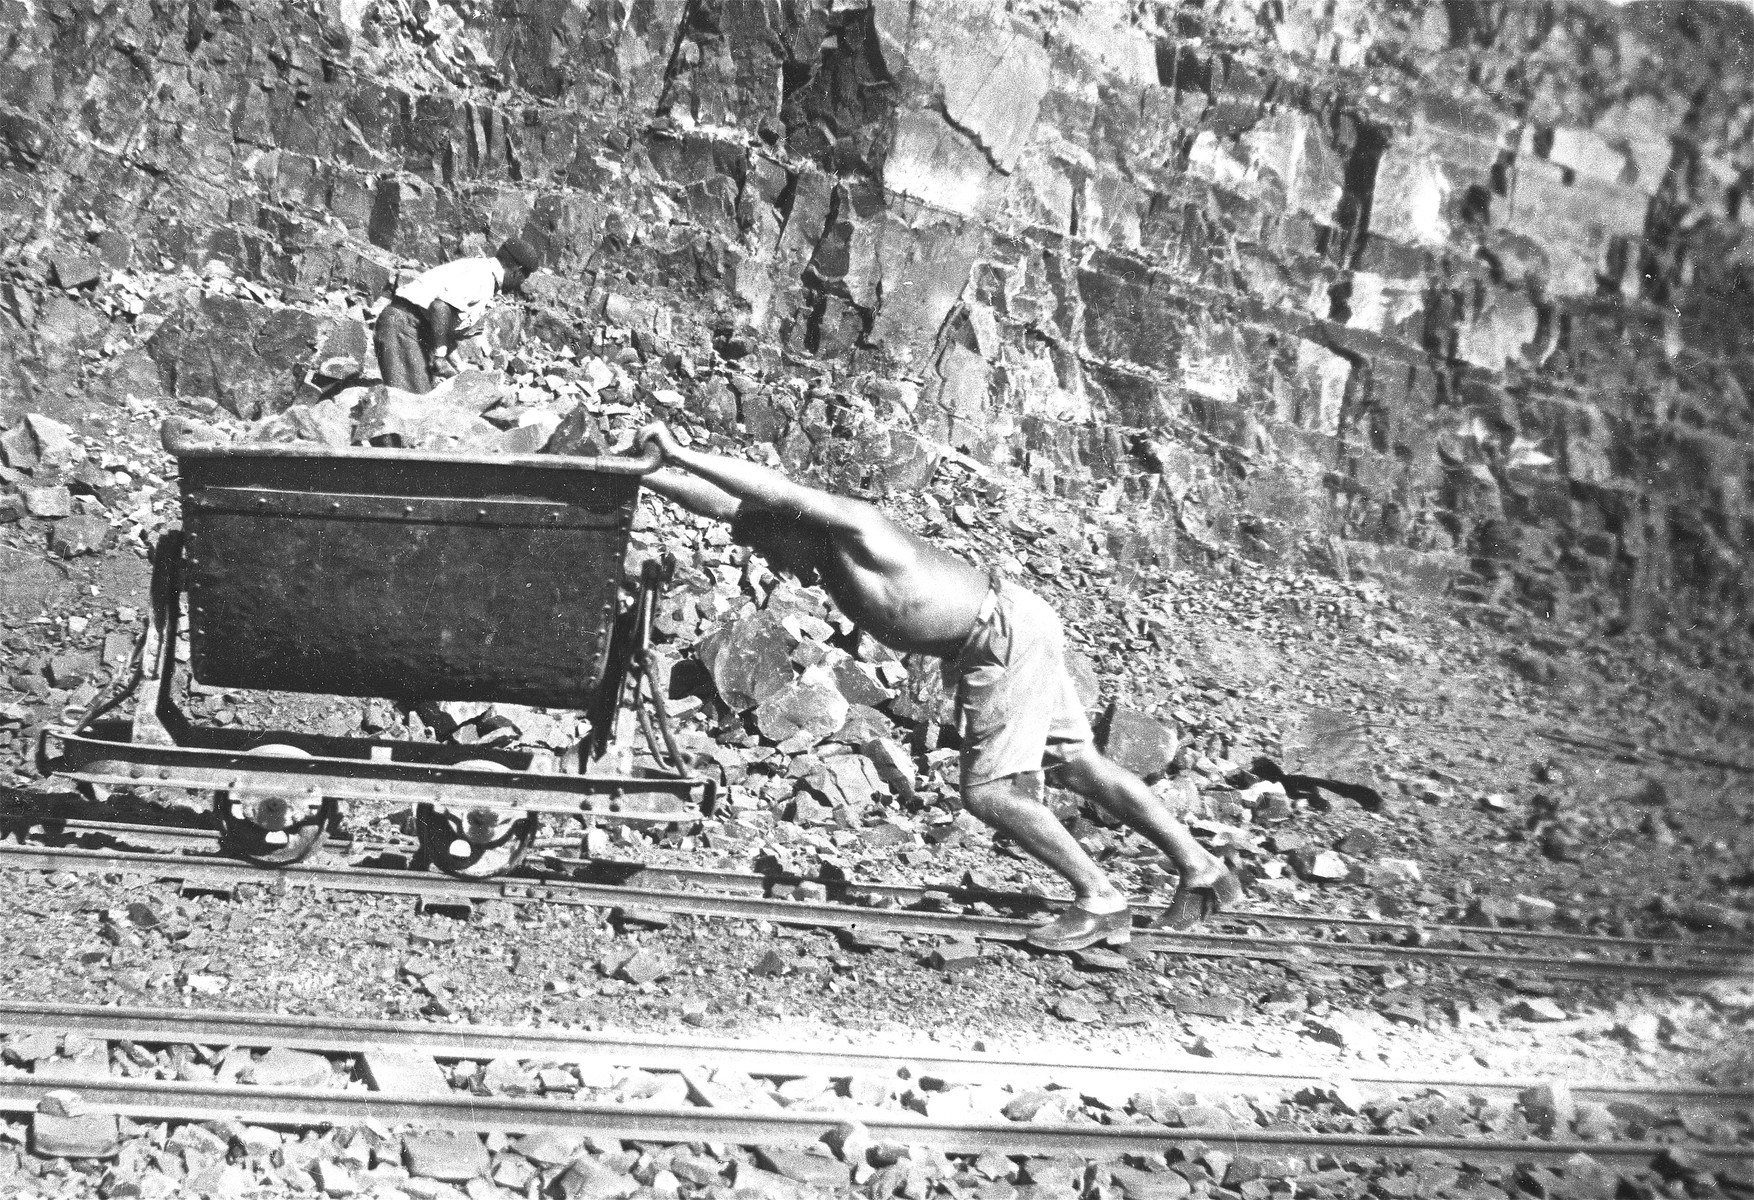 Rosenthal, a German Jewish prisoner, pushes a cart in the stone quarry of the Im Fout labor camp in Morocco.